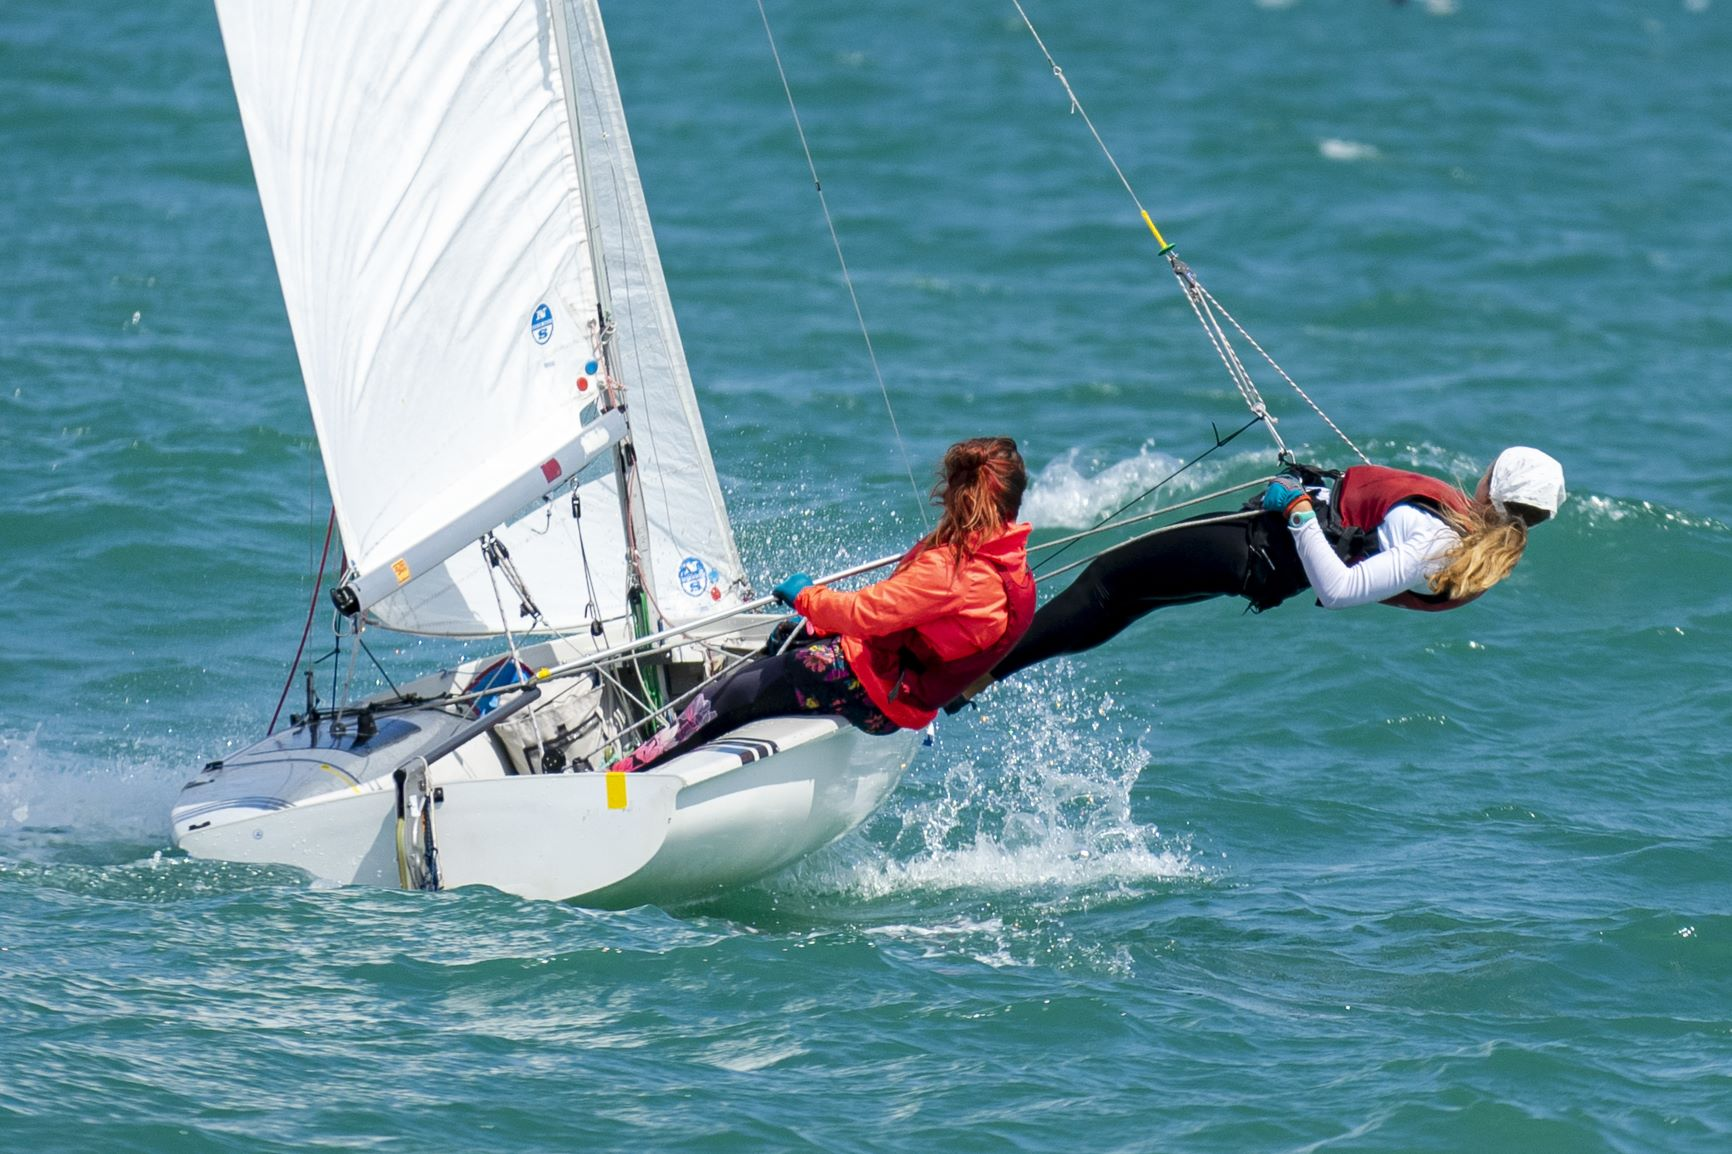 Sailing team competition